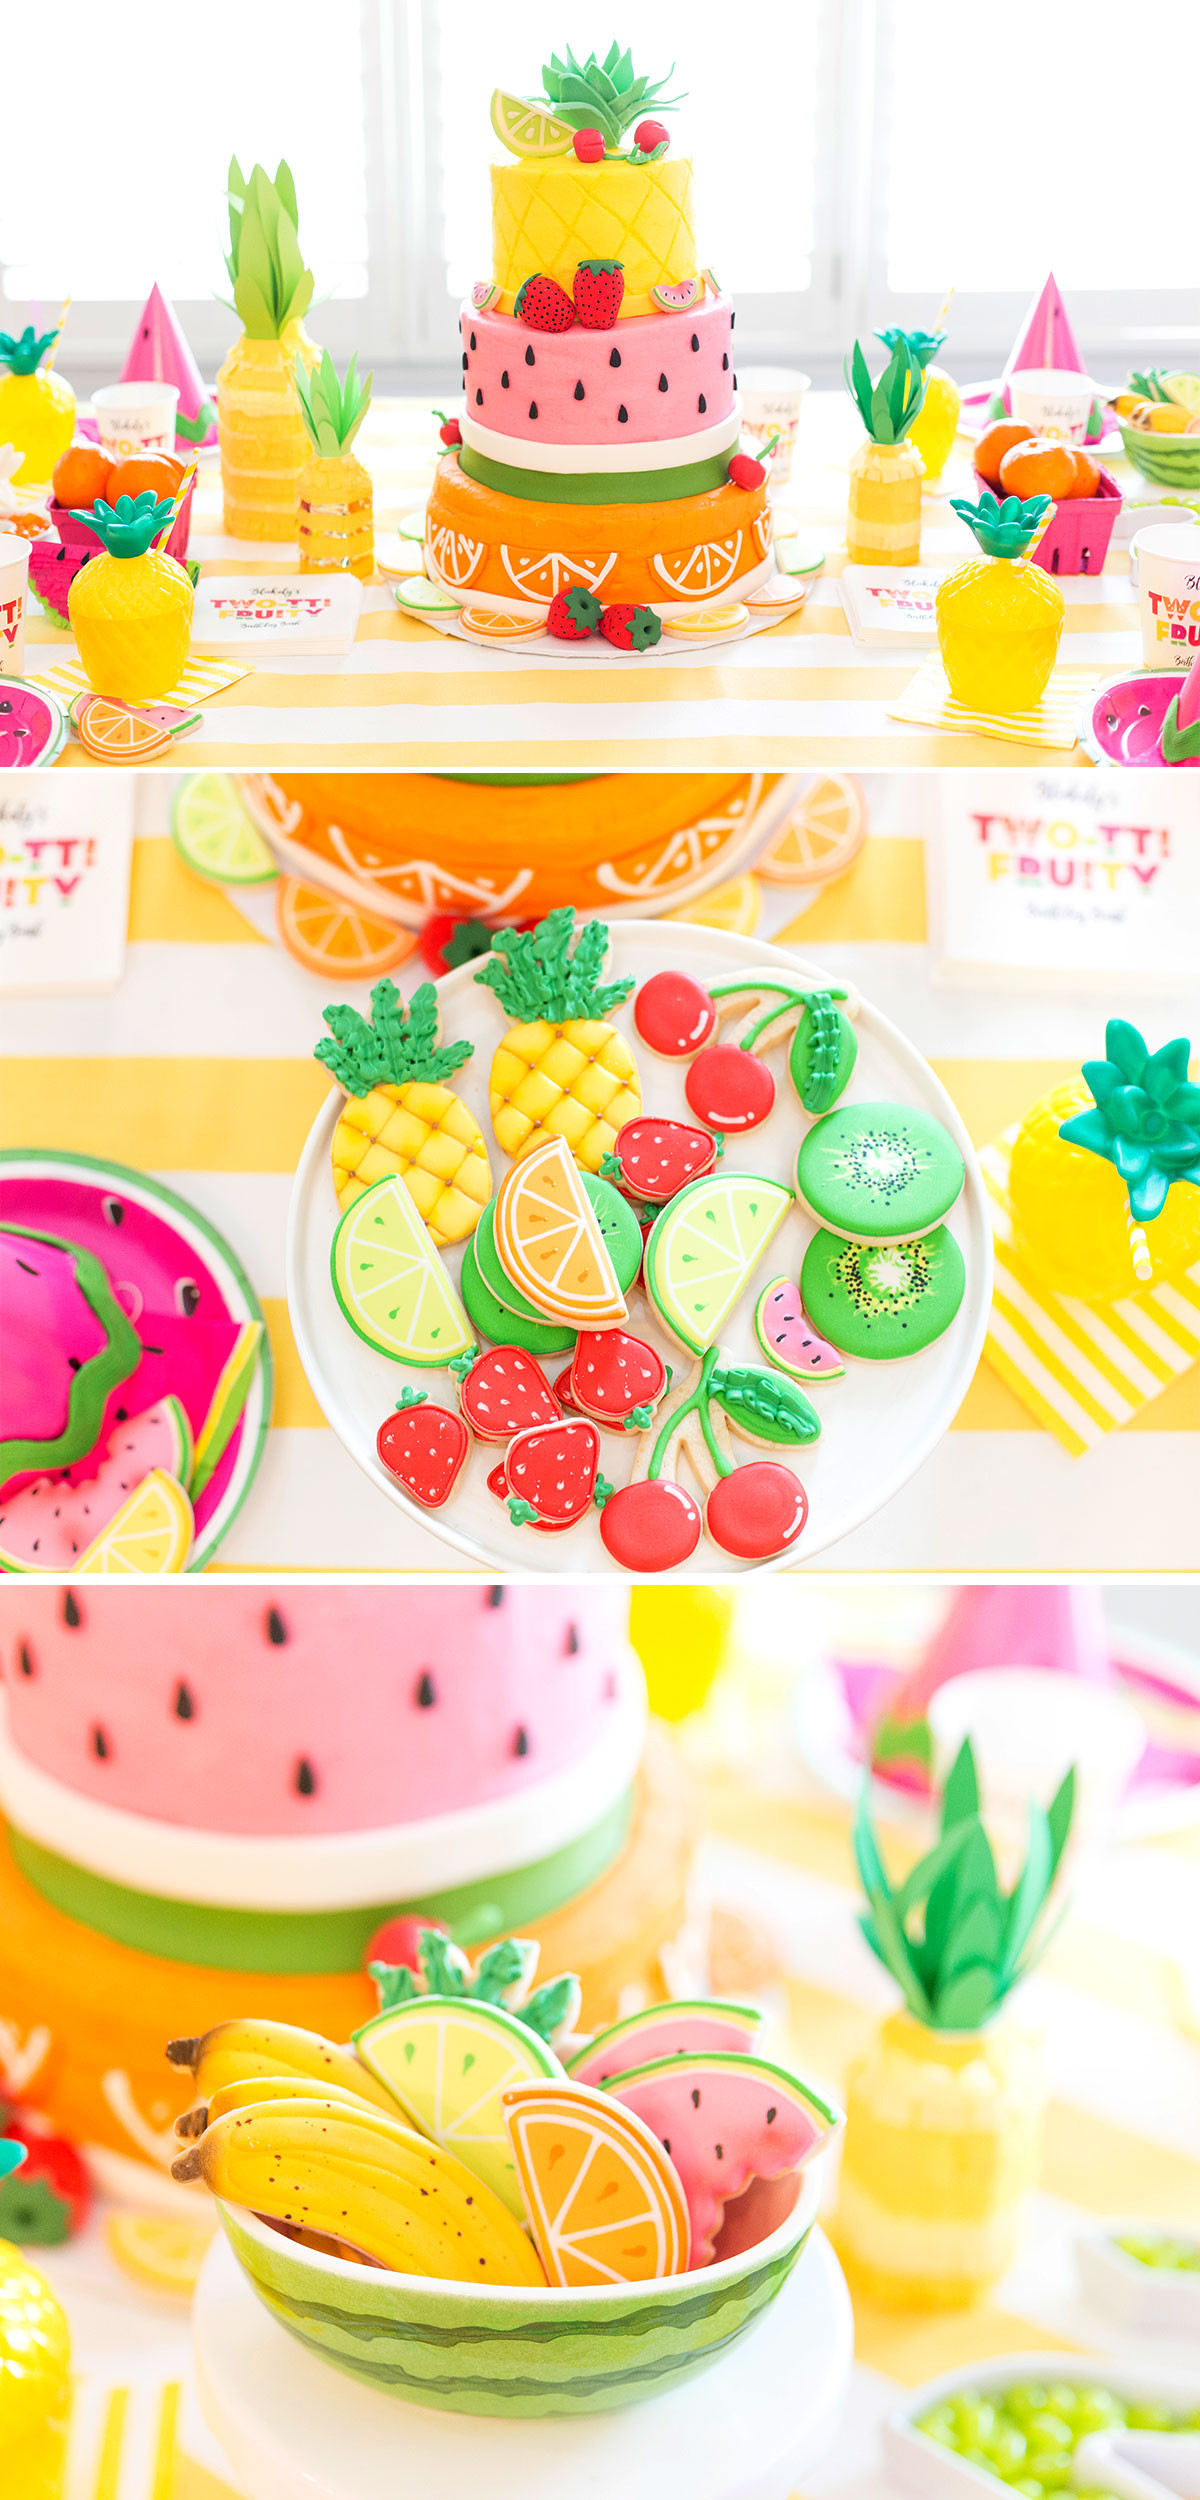 Best ideas about Toddler Birthday Party Ideas . Save or Pin 25 Fun Birthday Party Theme Ideas – Fun Squared Now.